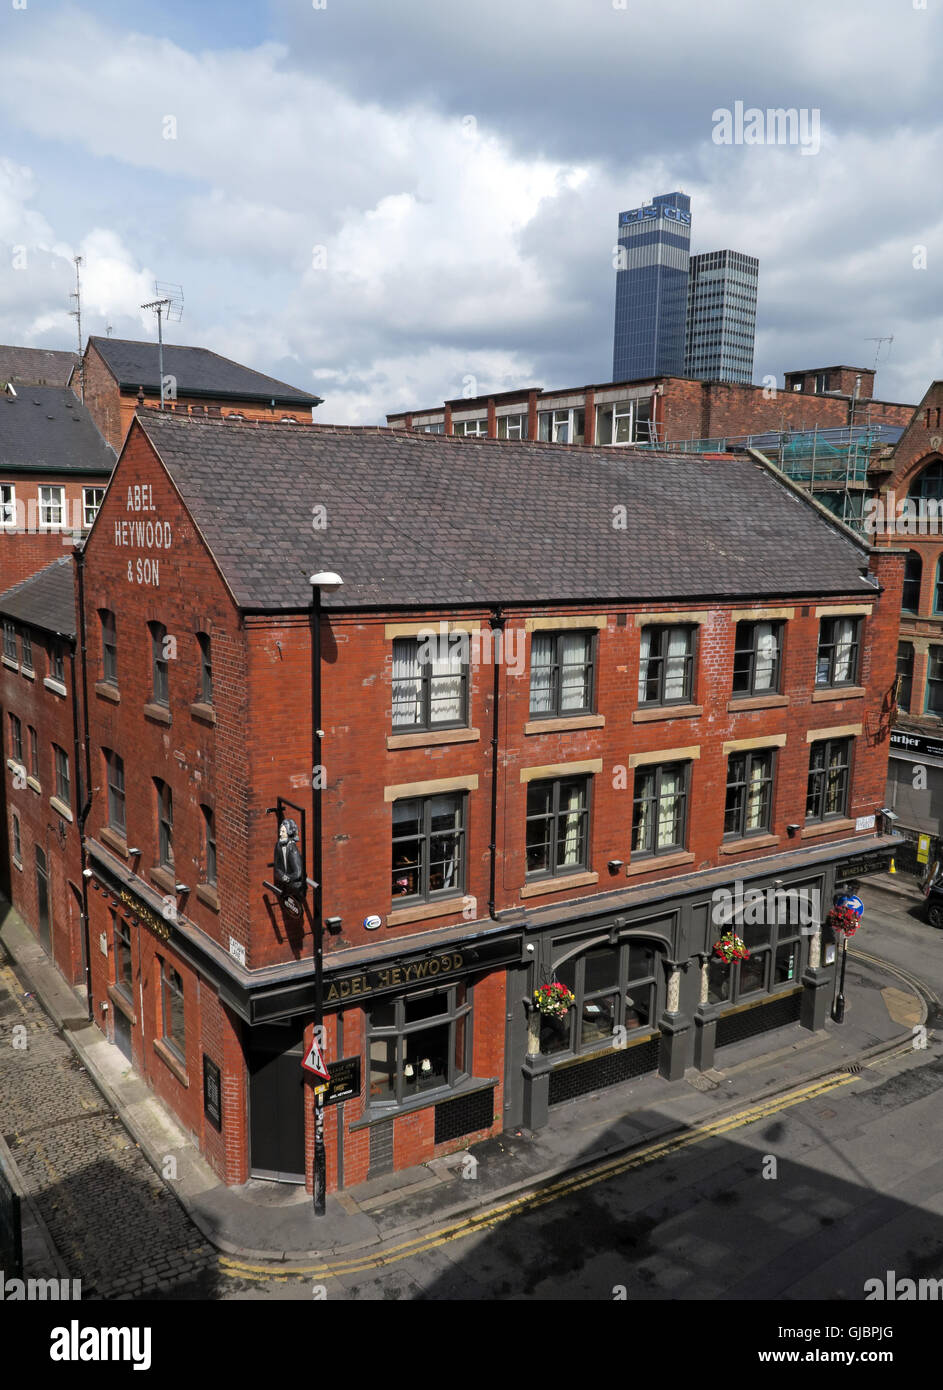 The Abel Heywood, 38 Turner St, Northern Quarter, Manchester, UK, M4 1DZ, CIS building in background - Stock Image